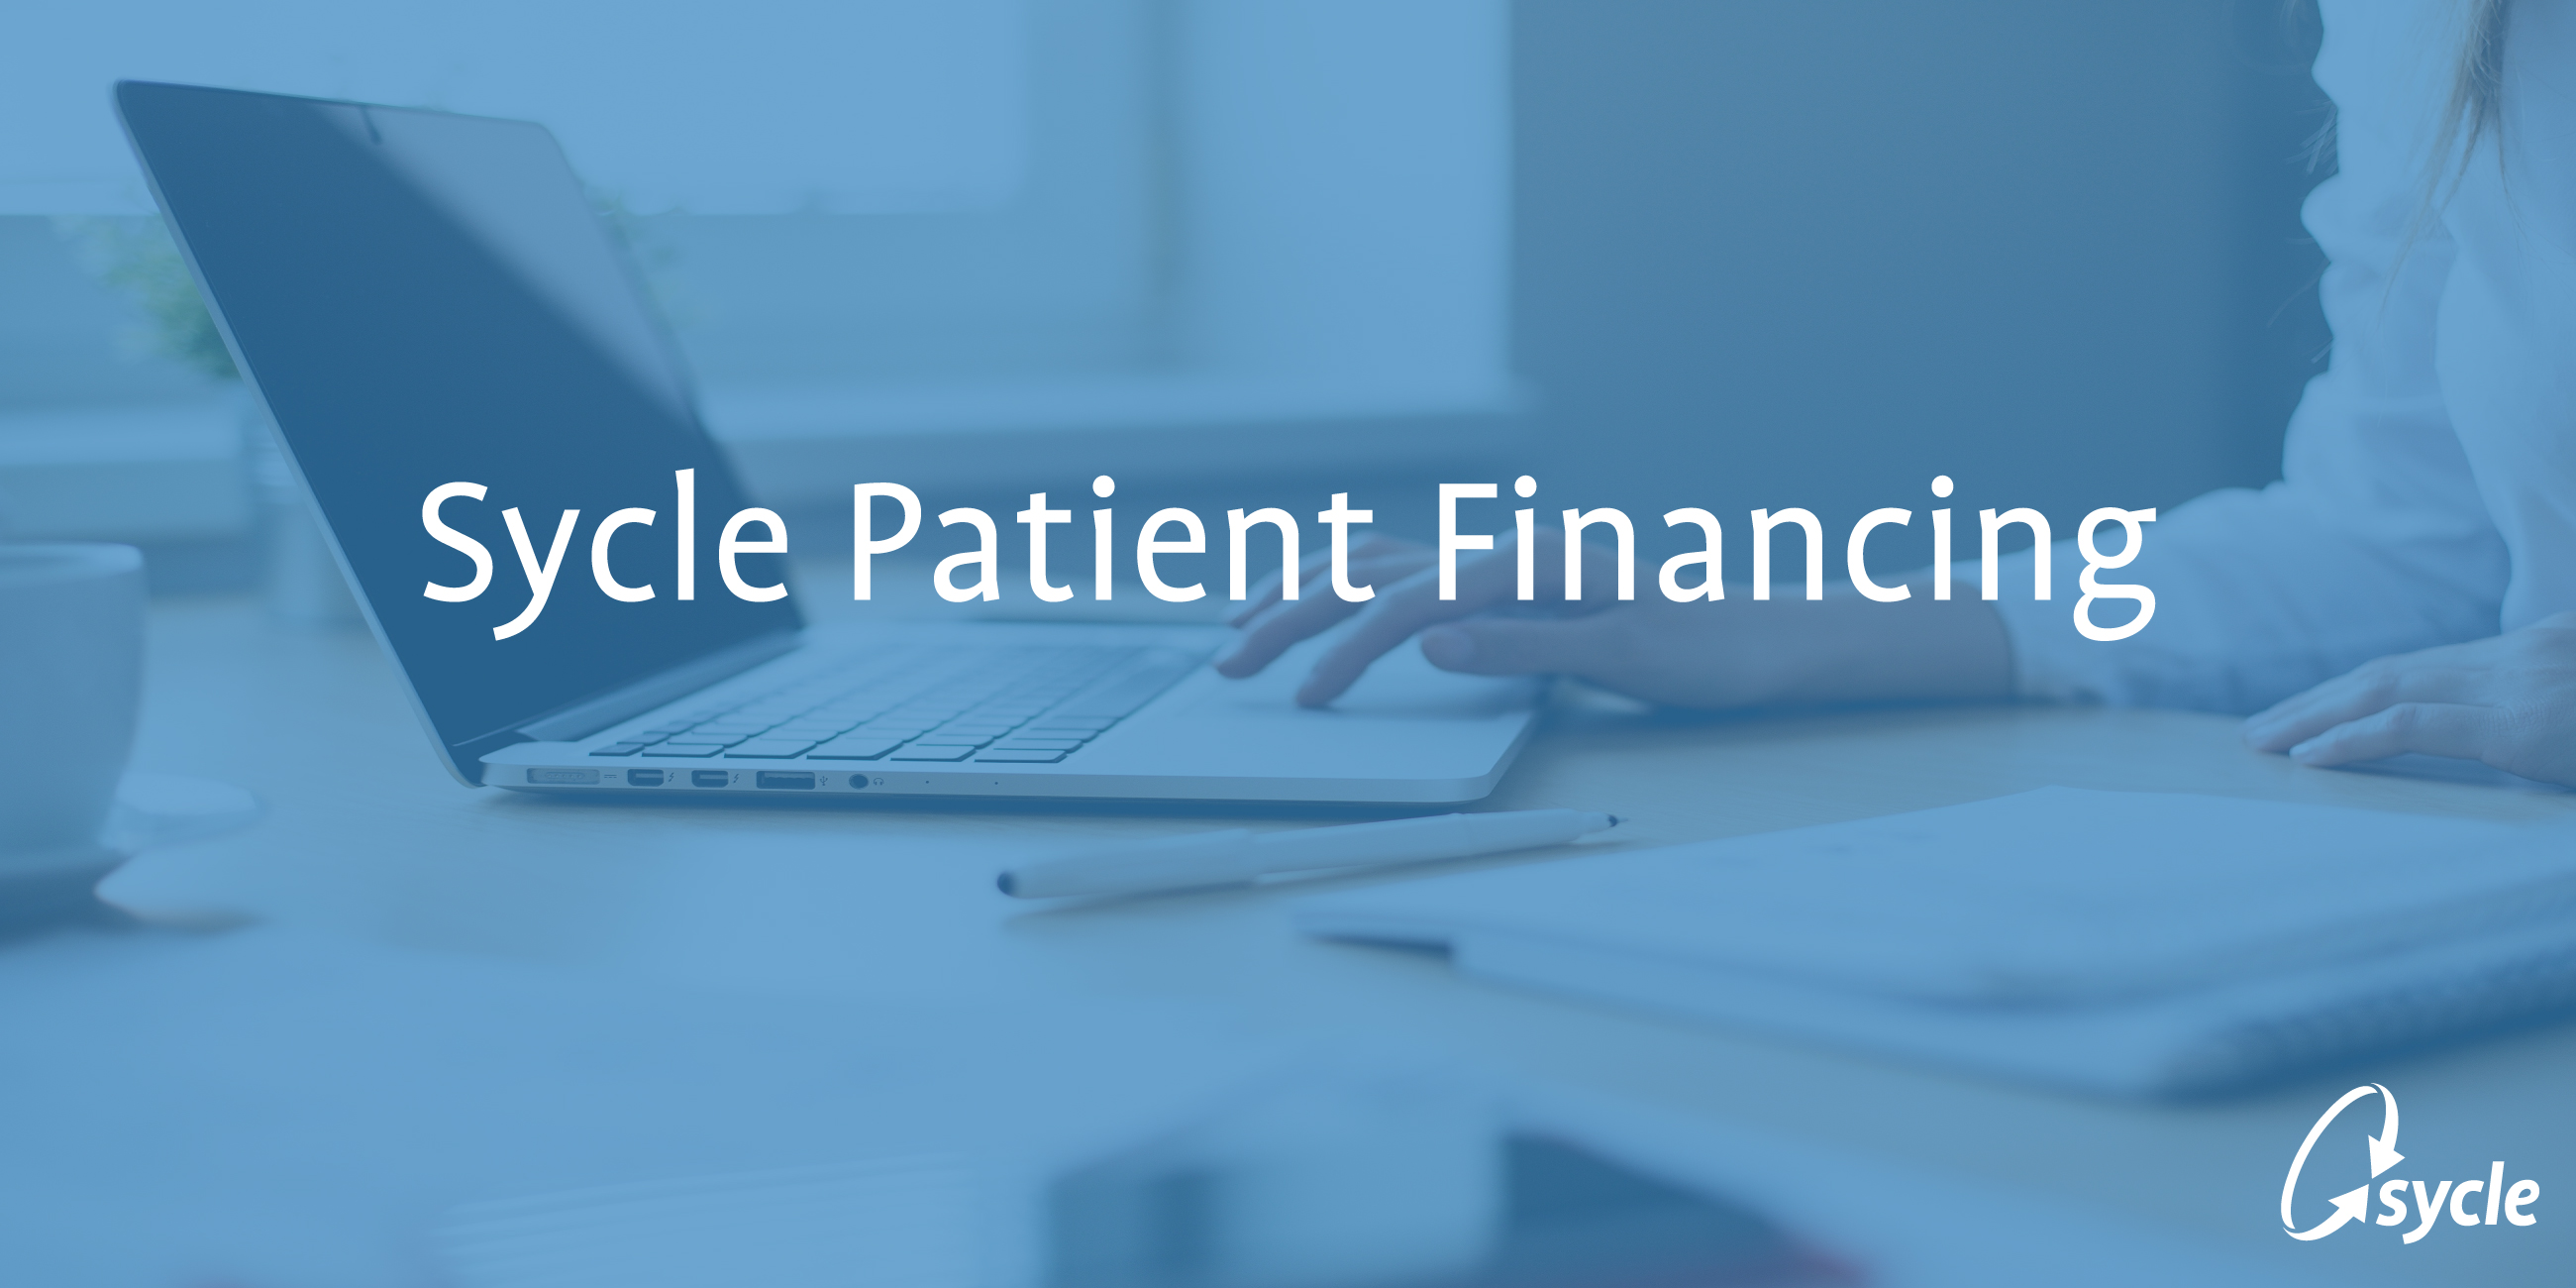 Sycle Patient Financing image